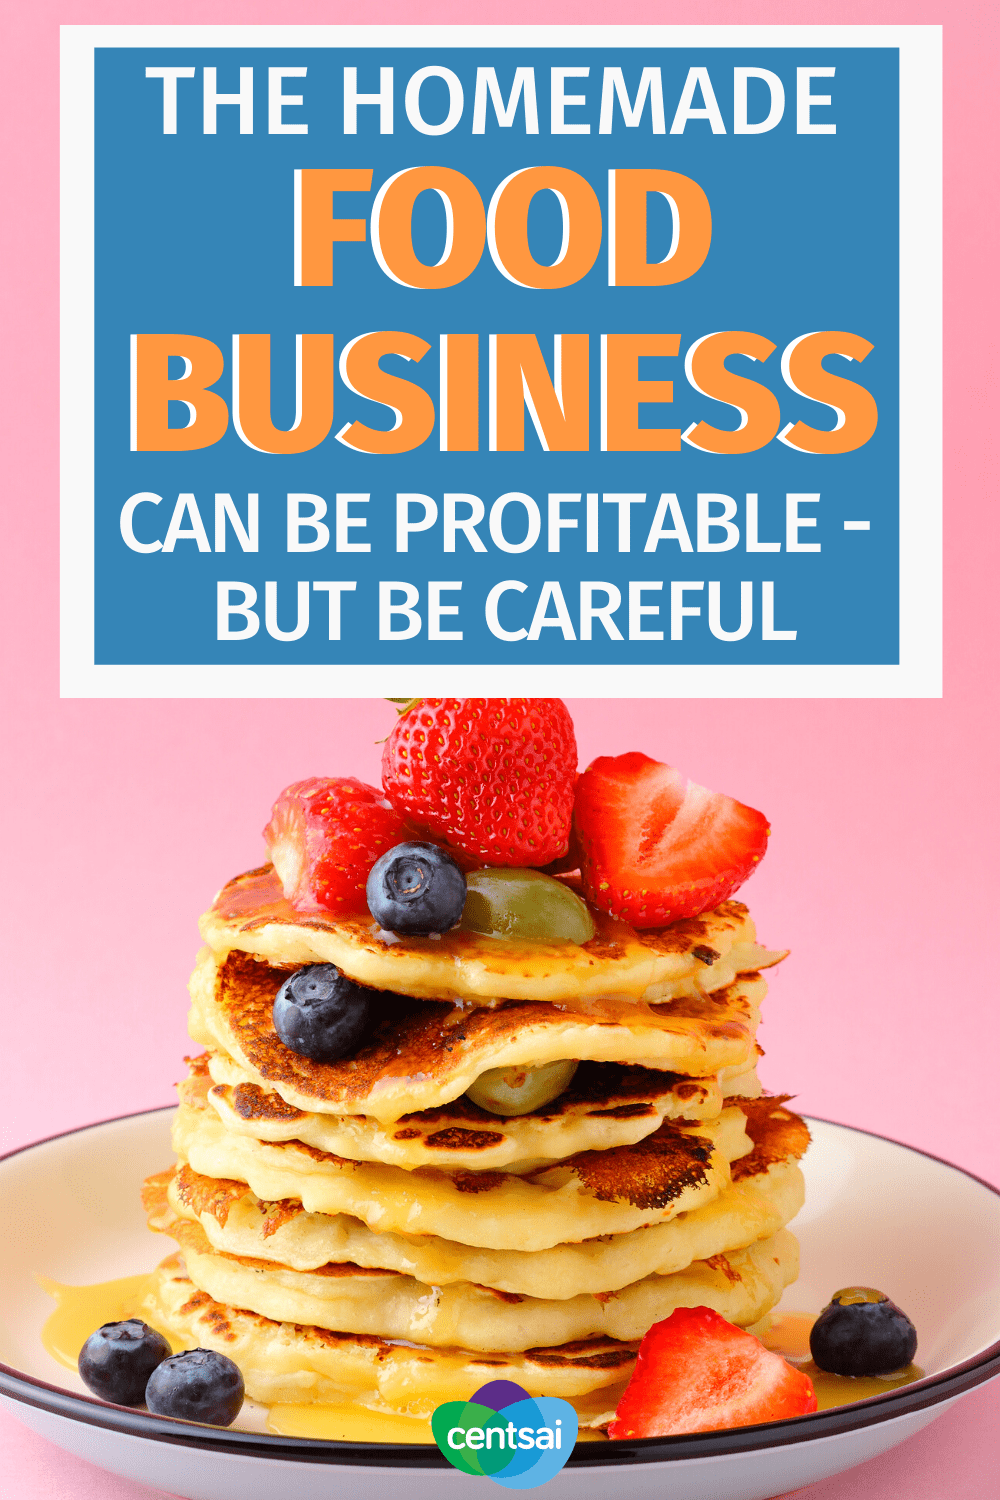 The Homemade Food Business Can Be Profitable - But Be Careful